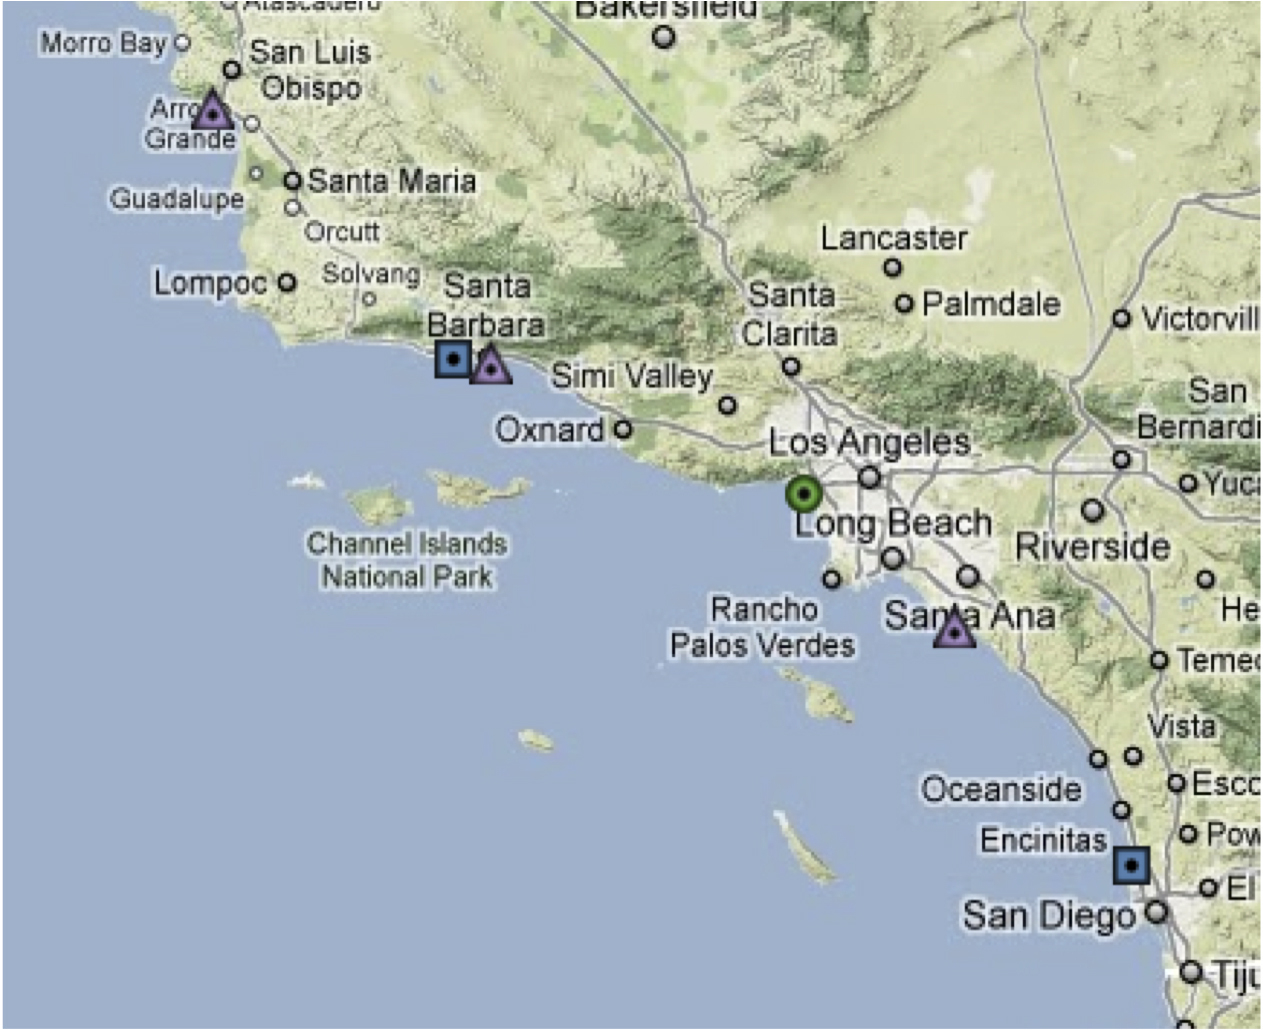 Map Of Southern California California River Map Southern California - Map Of Southern California Coastline